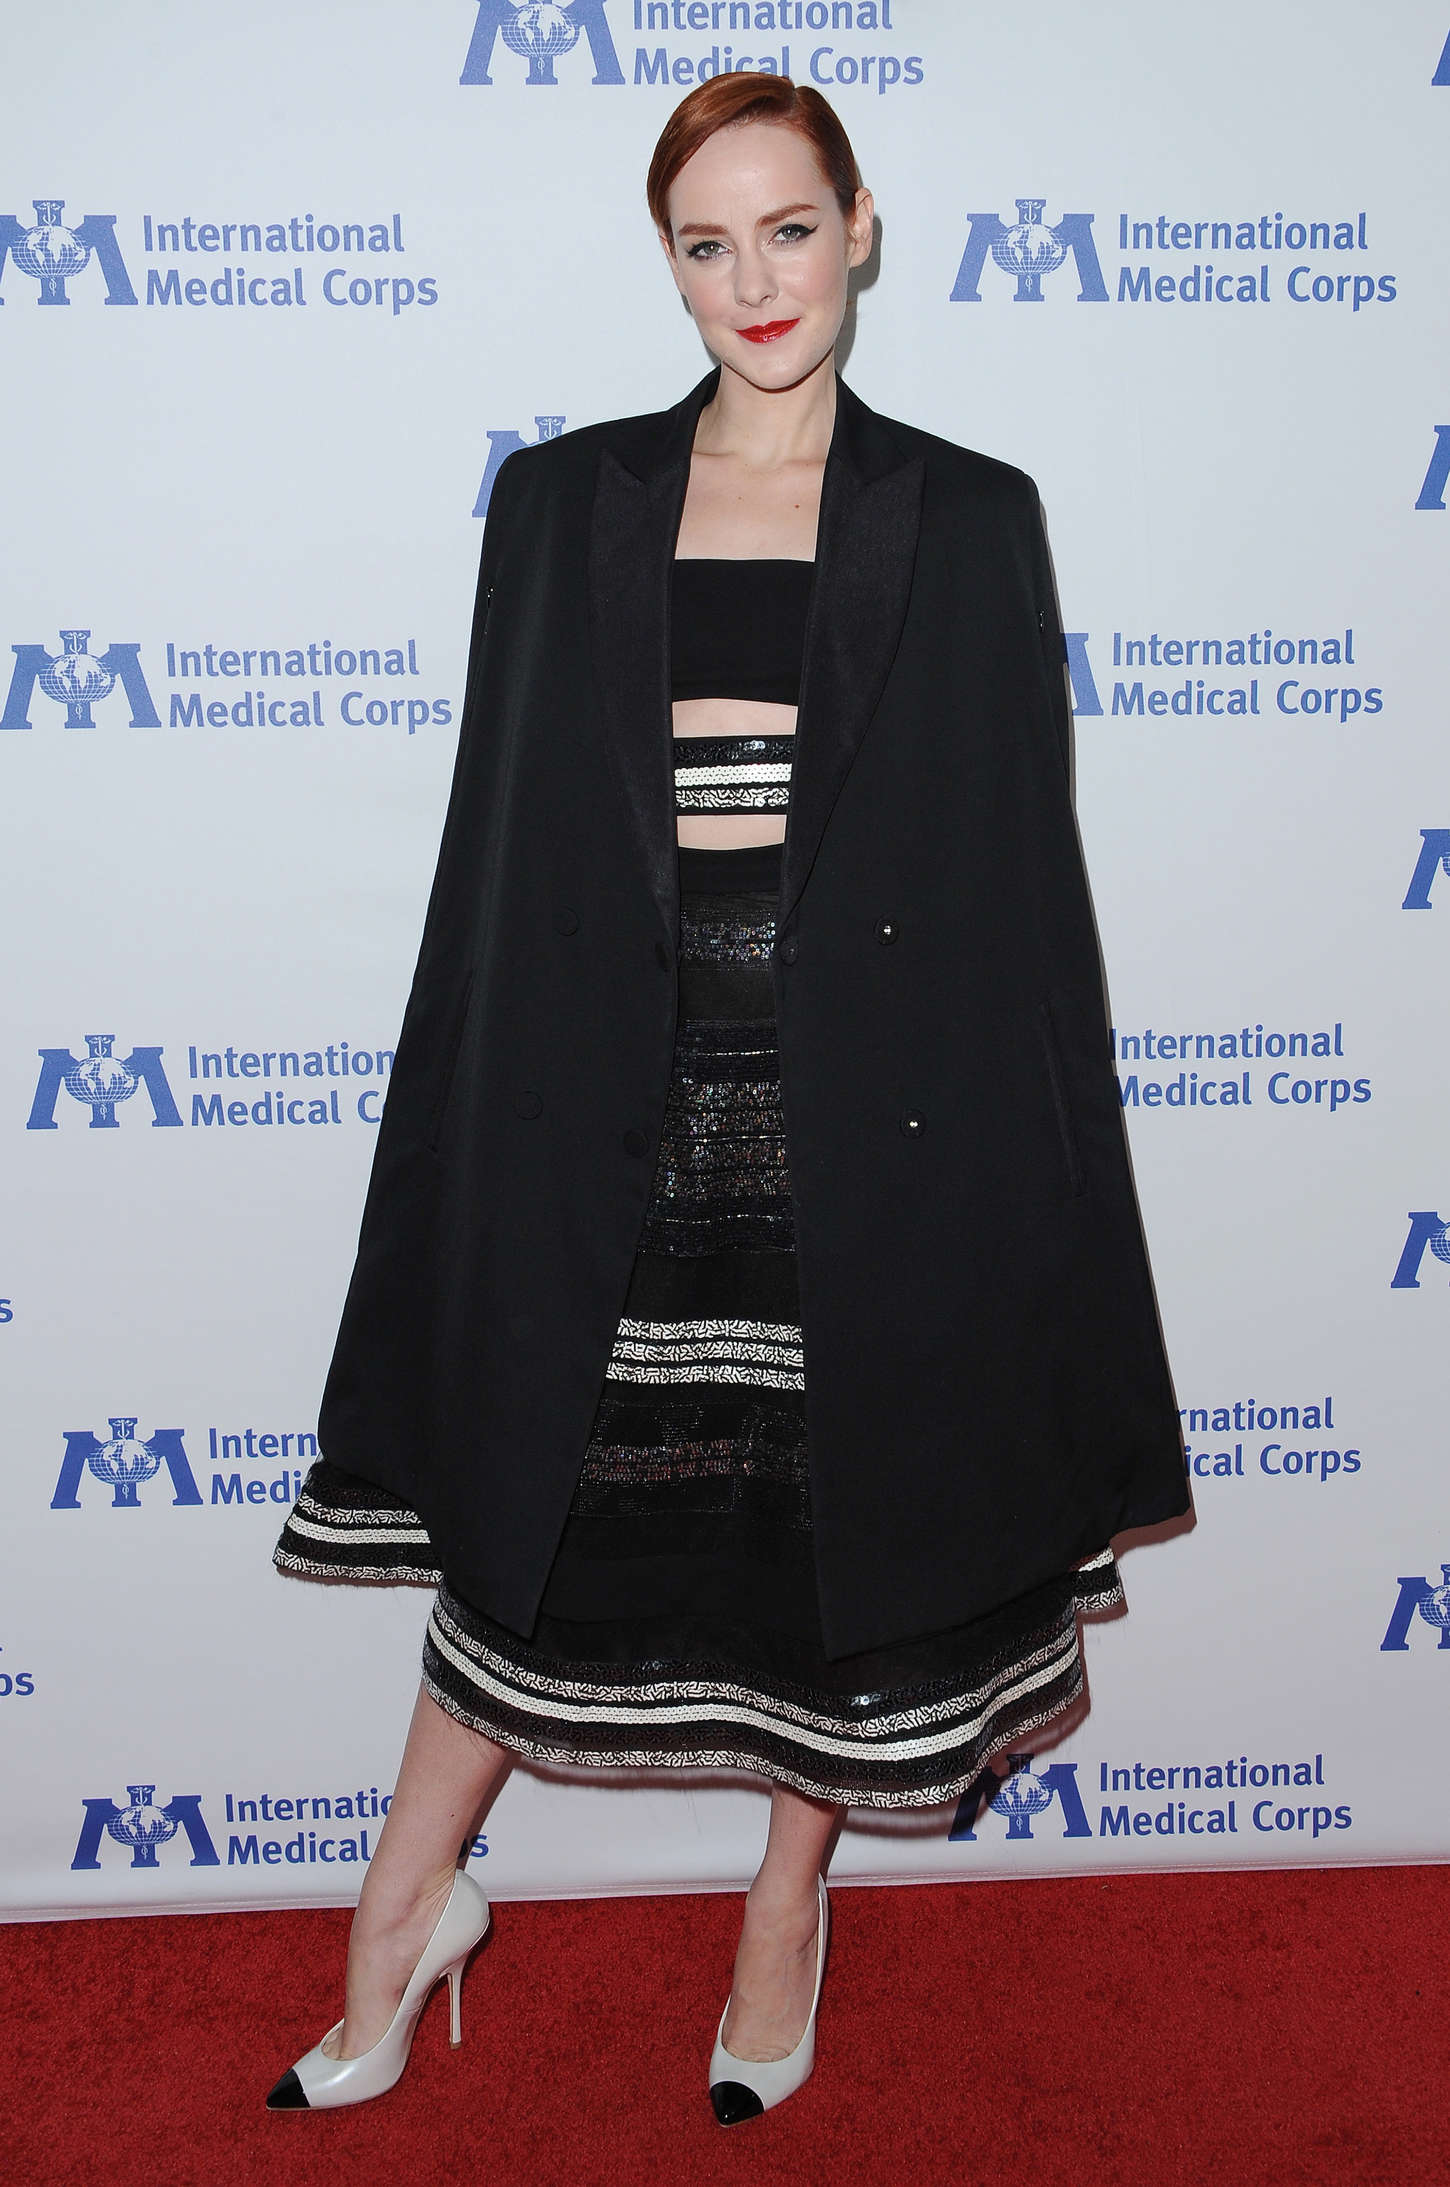 Jena Malone International Medical Corps Annual Awards Dinner in Beverly Hills